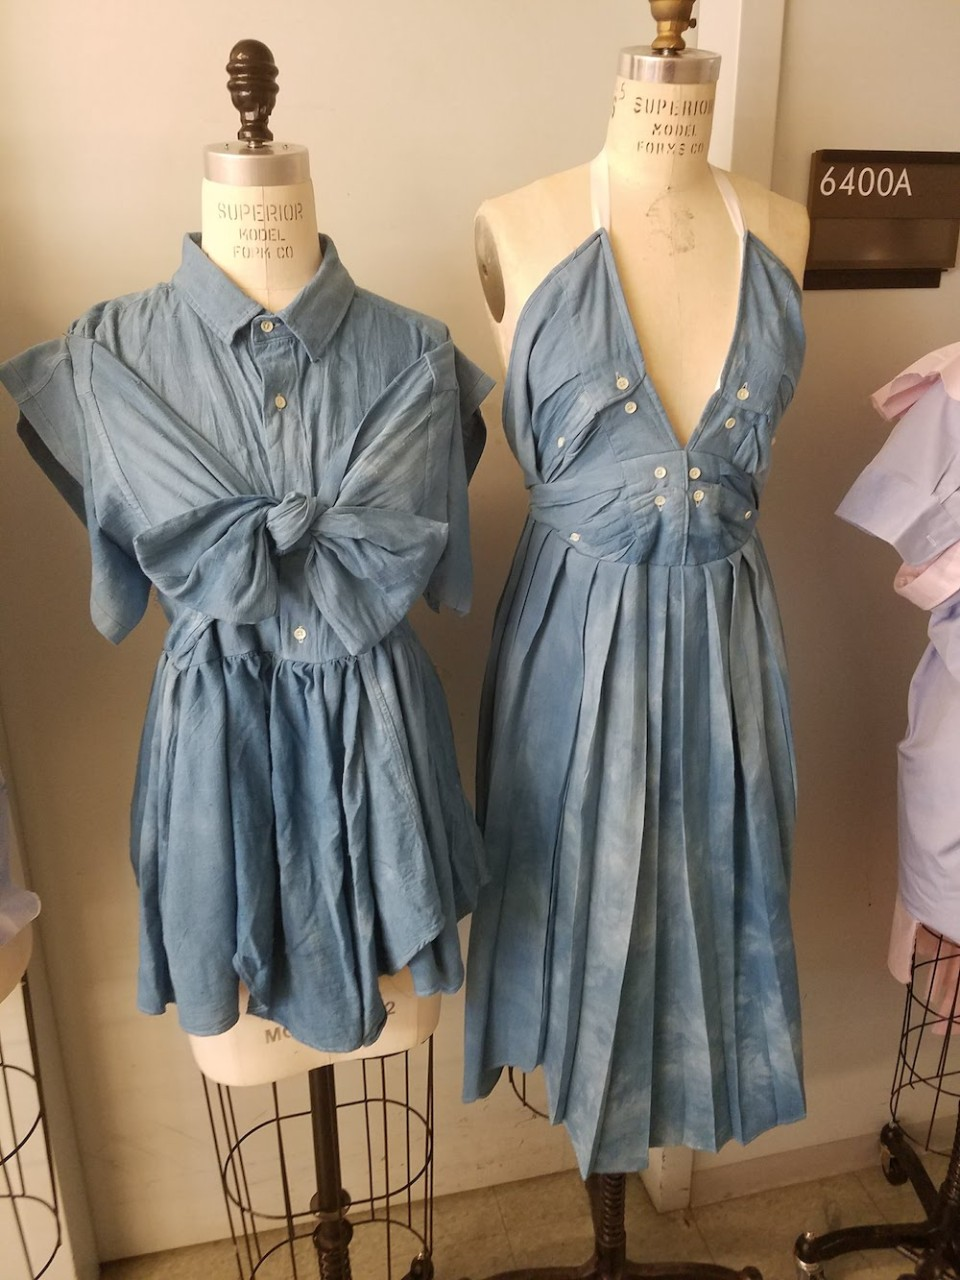 Two blue dresses made from two white button-up shirts on a dress form.